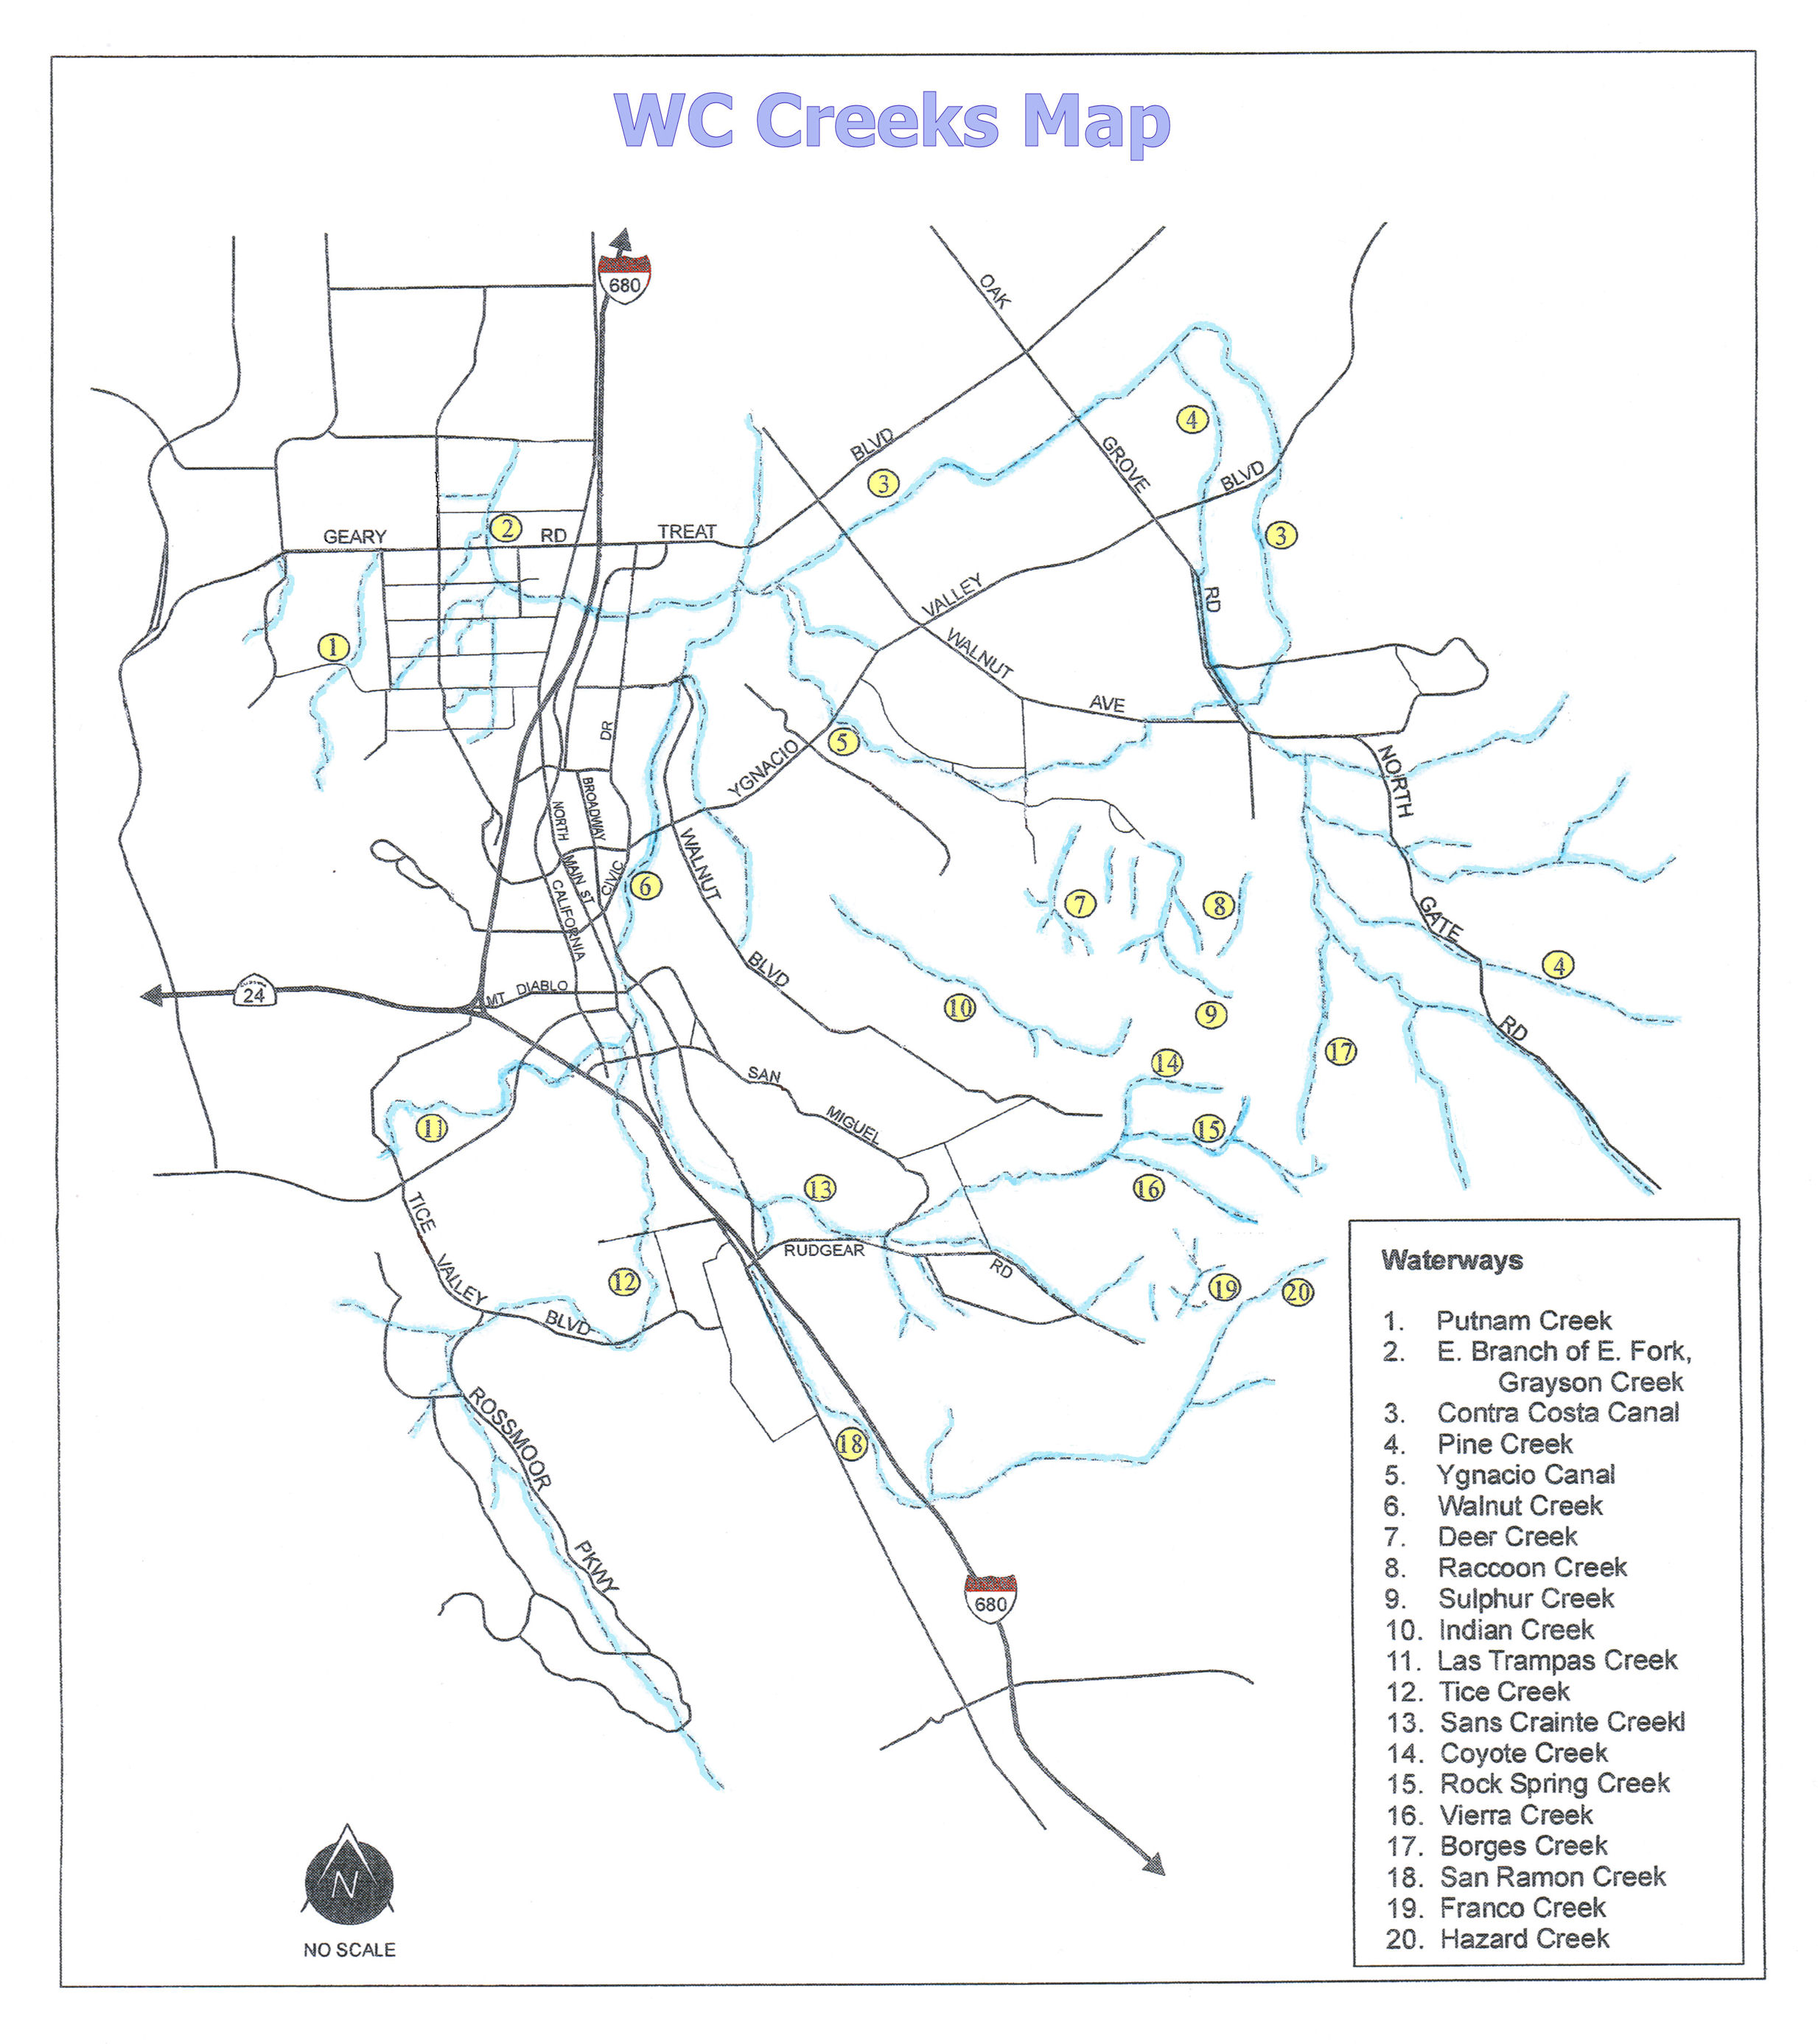 Friends of the Creeks on